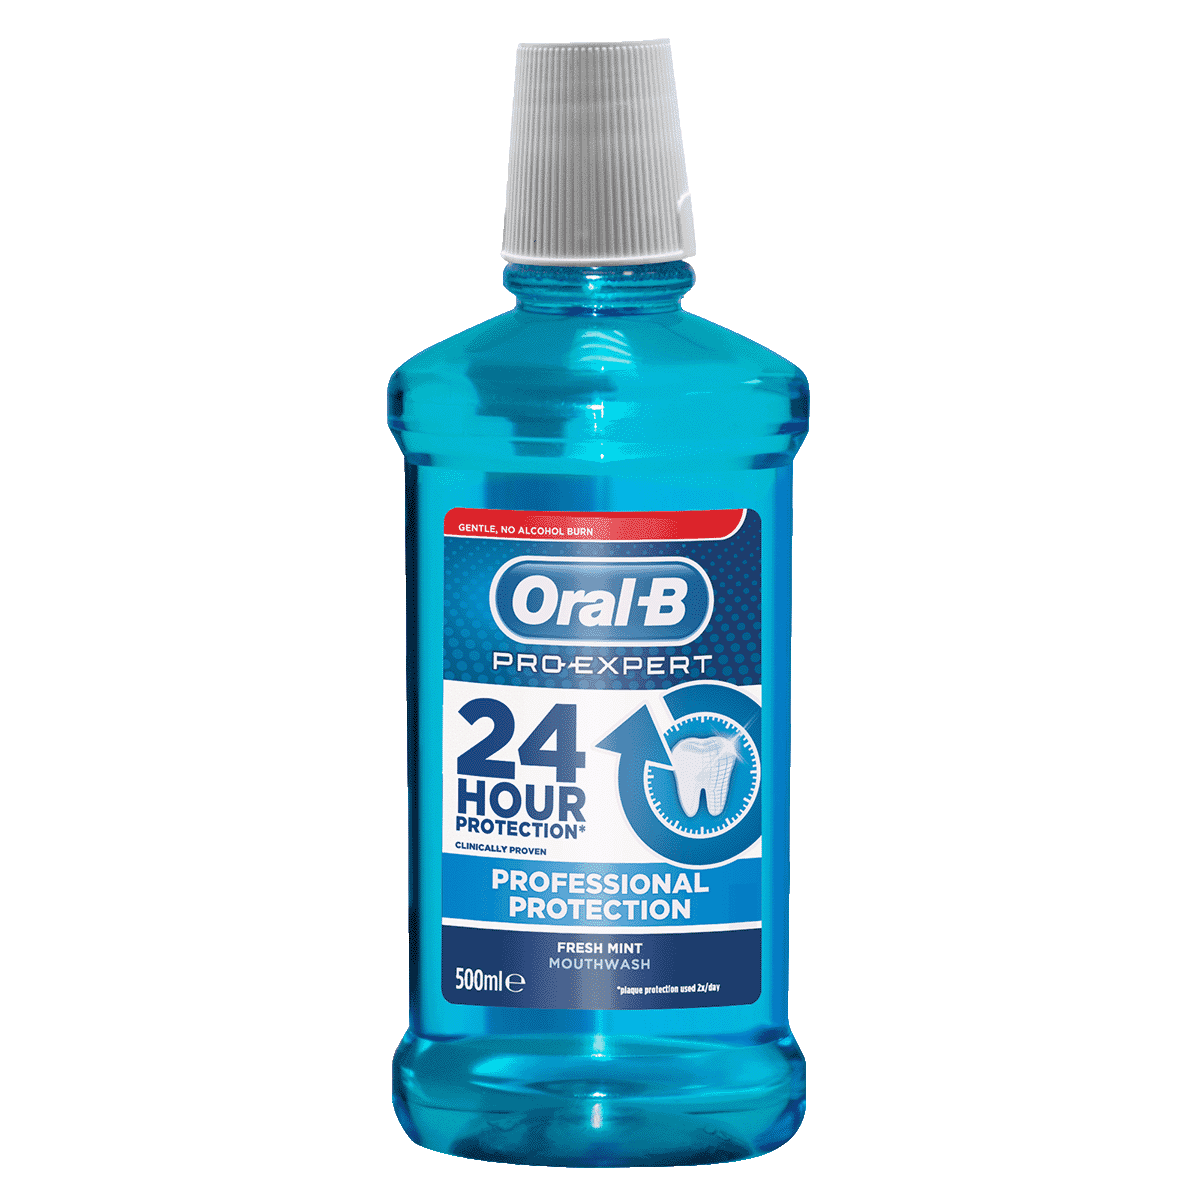 Image result for Oral Basics Teeth Whitening Mouthwash: